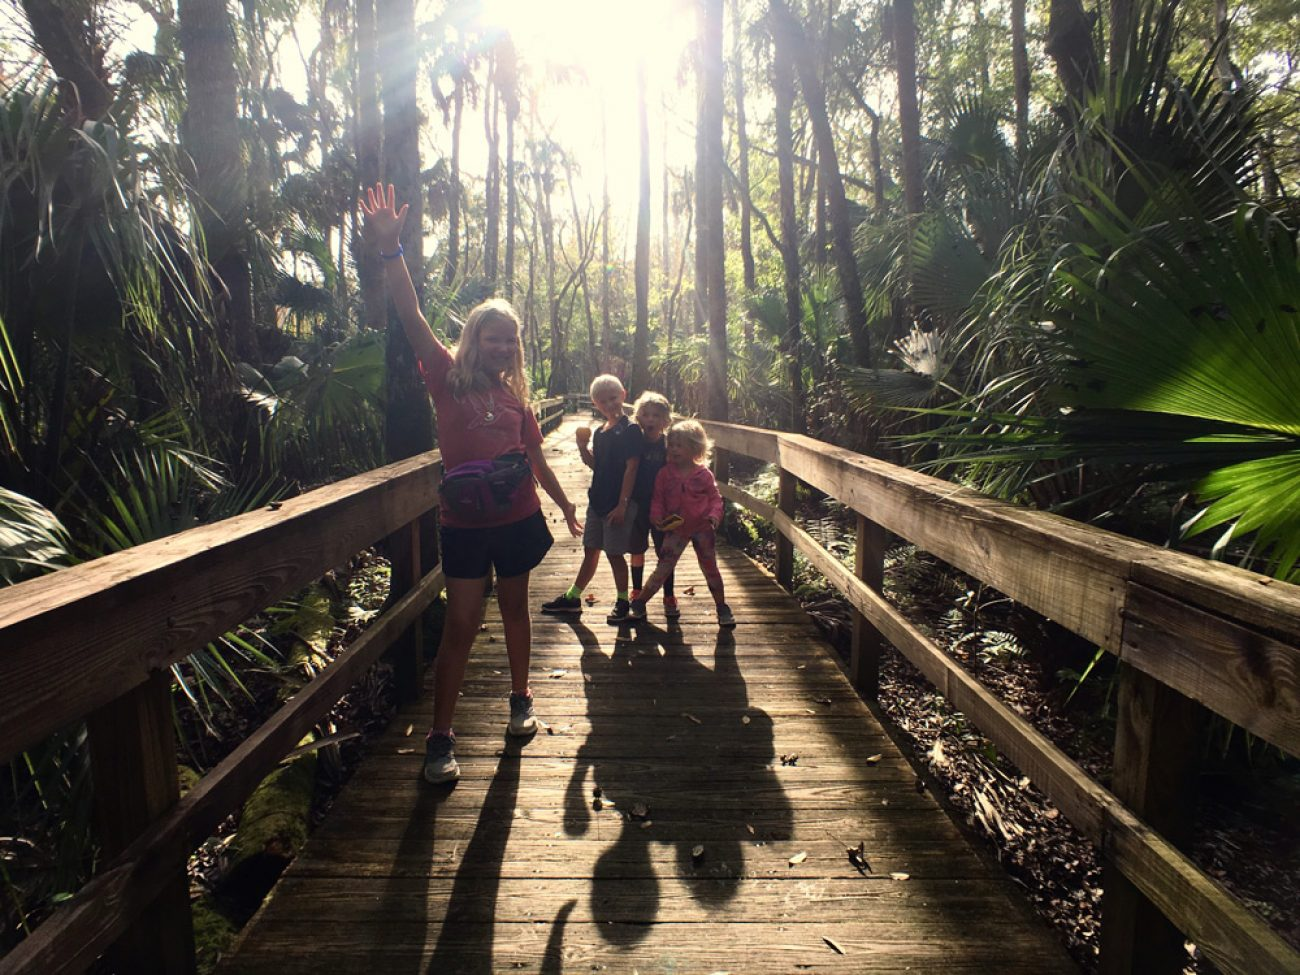 Kids at highlands hammock state park